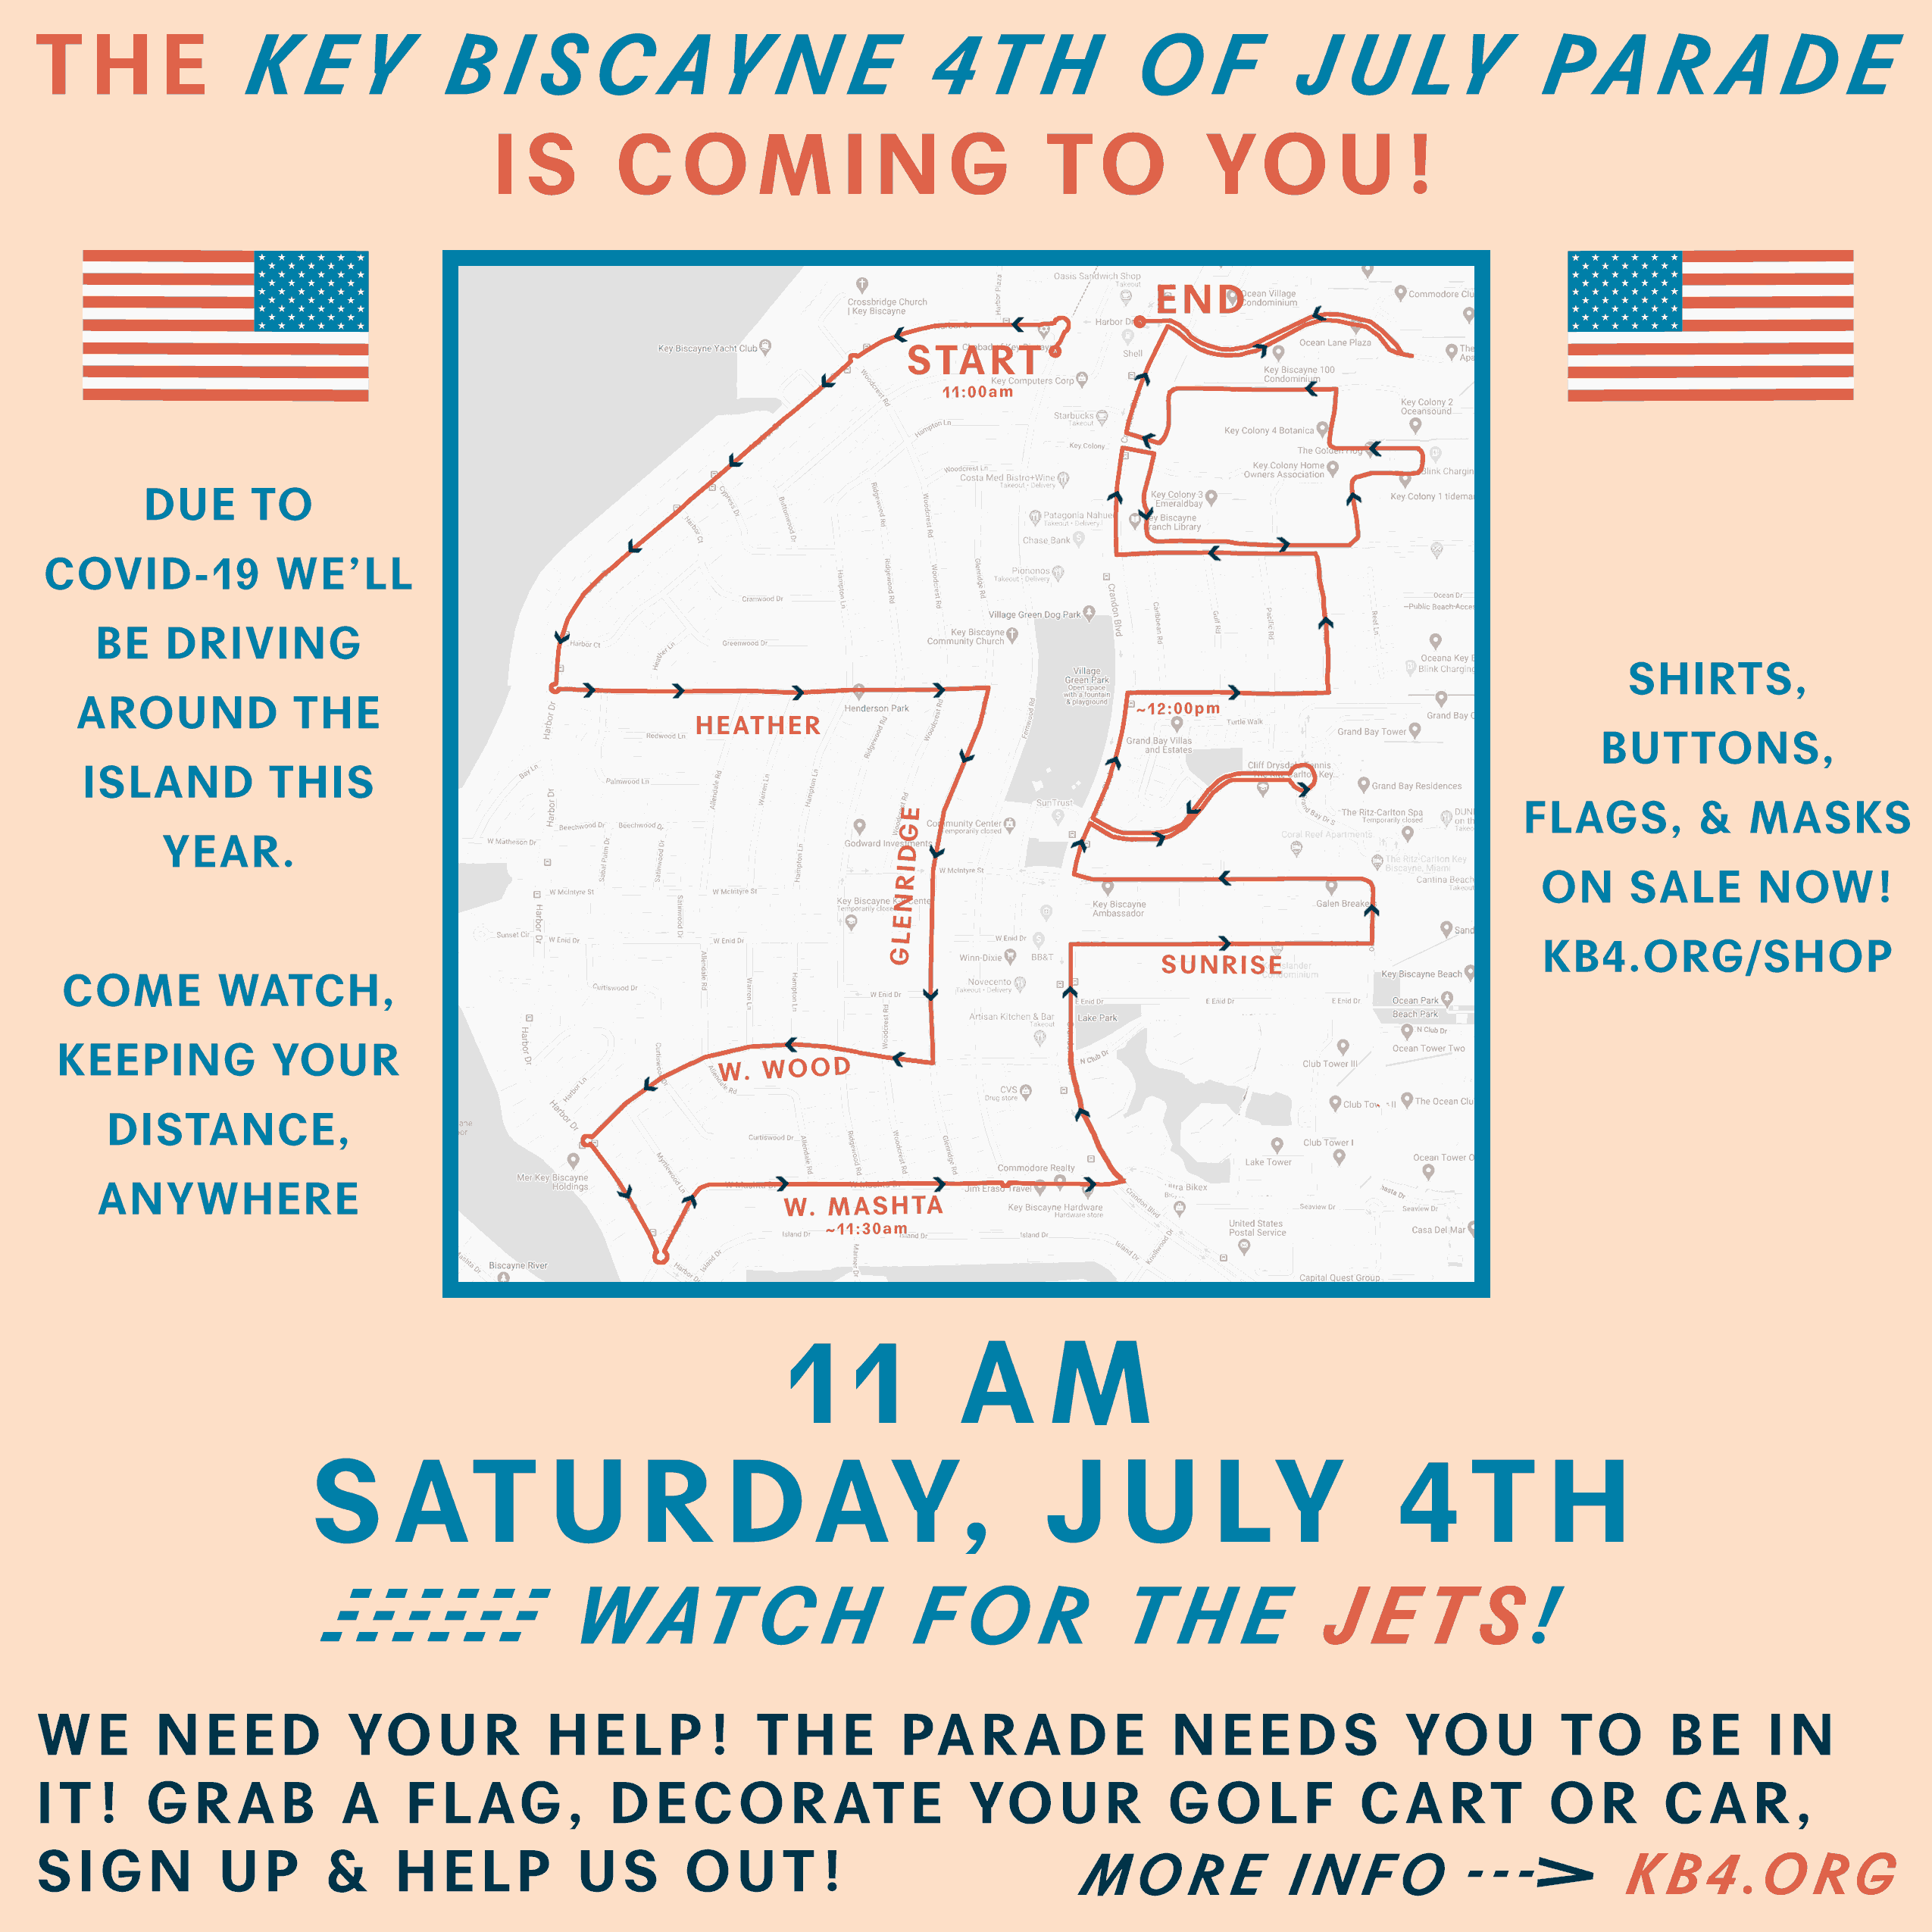 Key Biscayne 4th of July parade route 2020